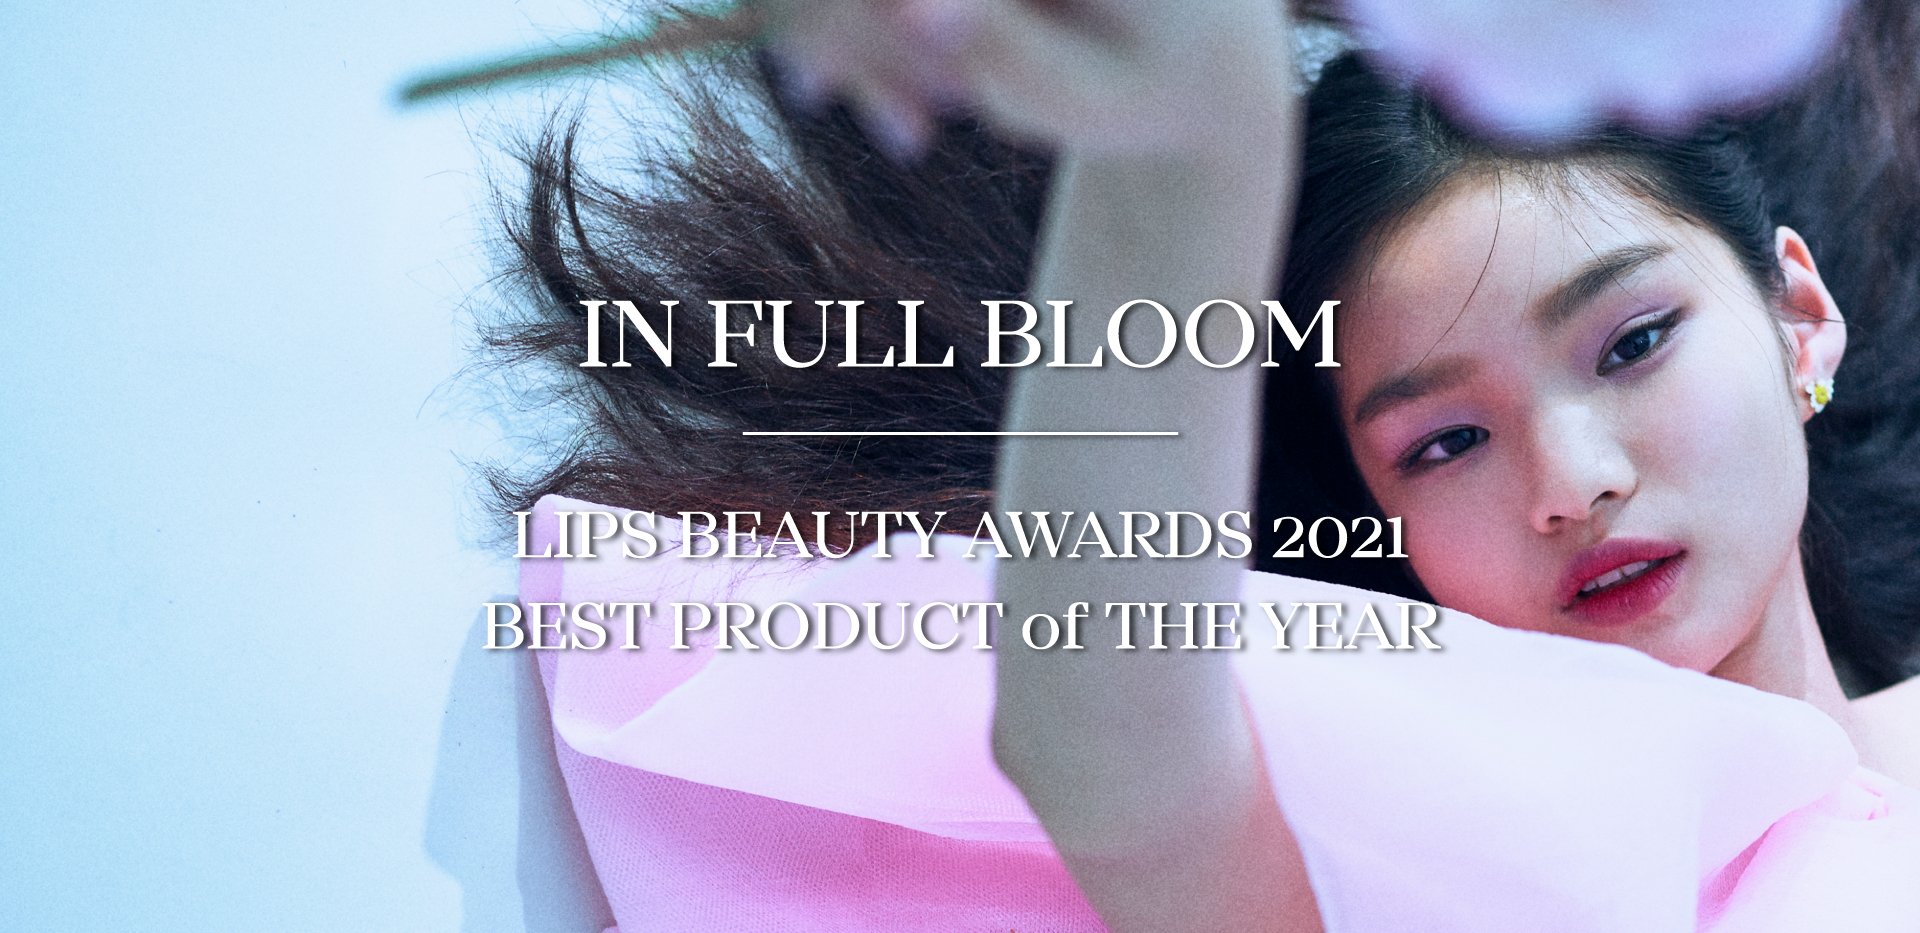 LIPS BEAUTY AWARDS 2021 : BEST PRODUCT of THE YEAR